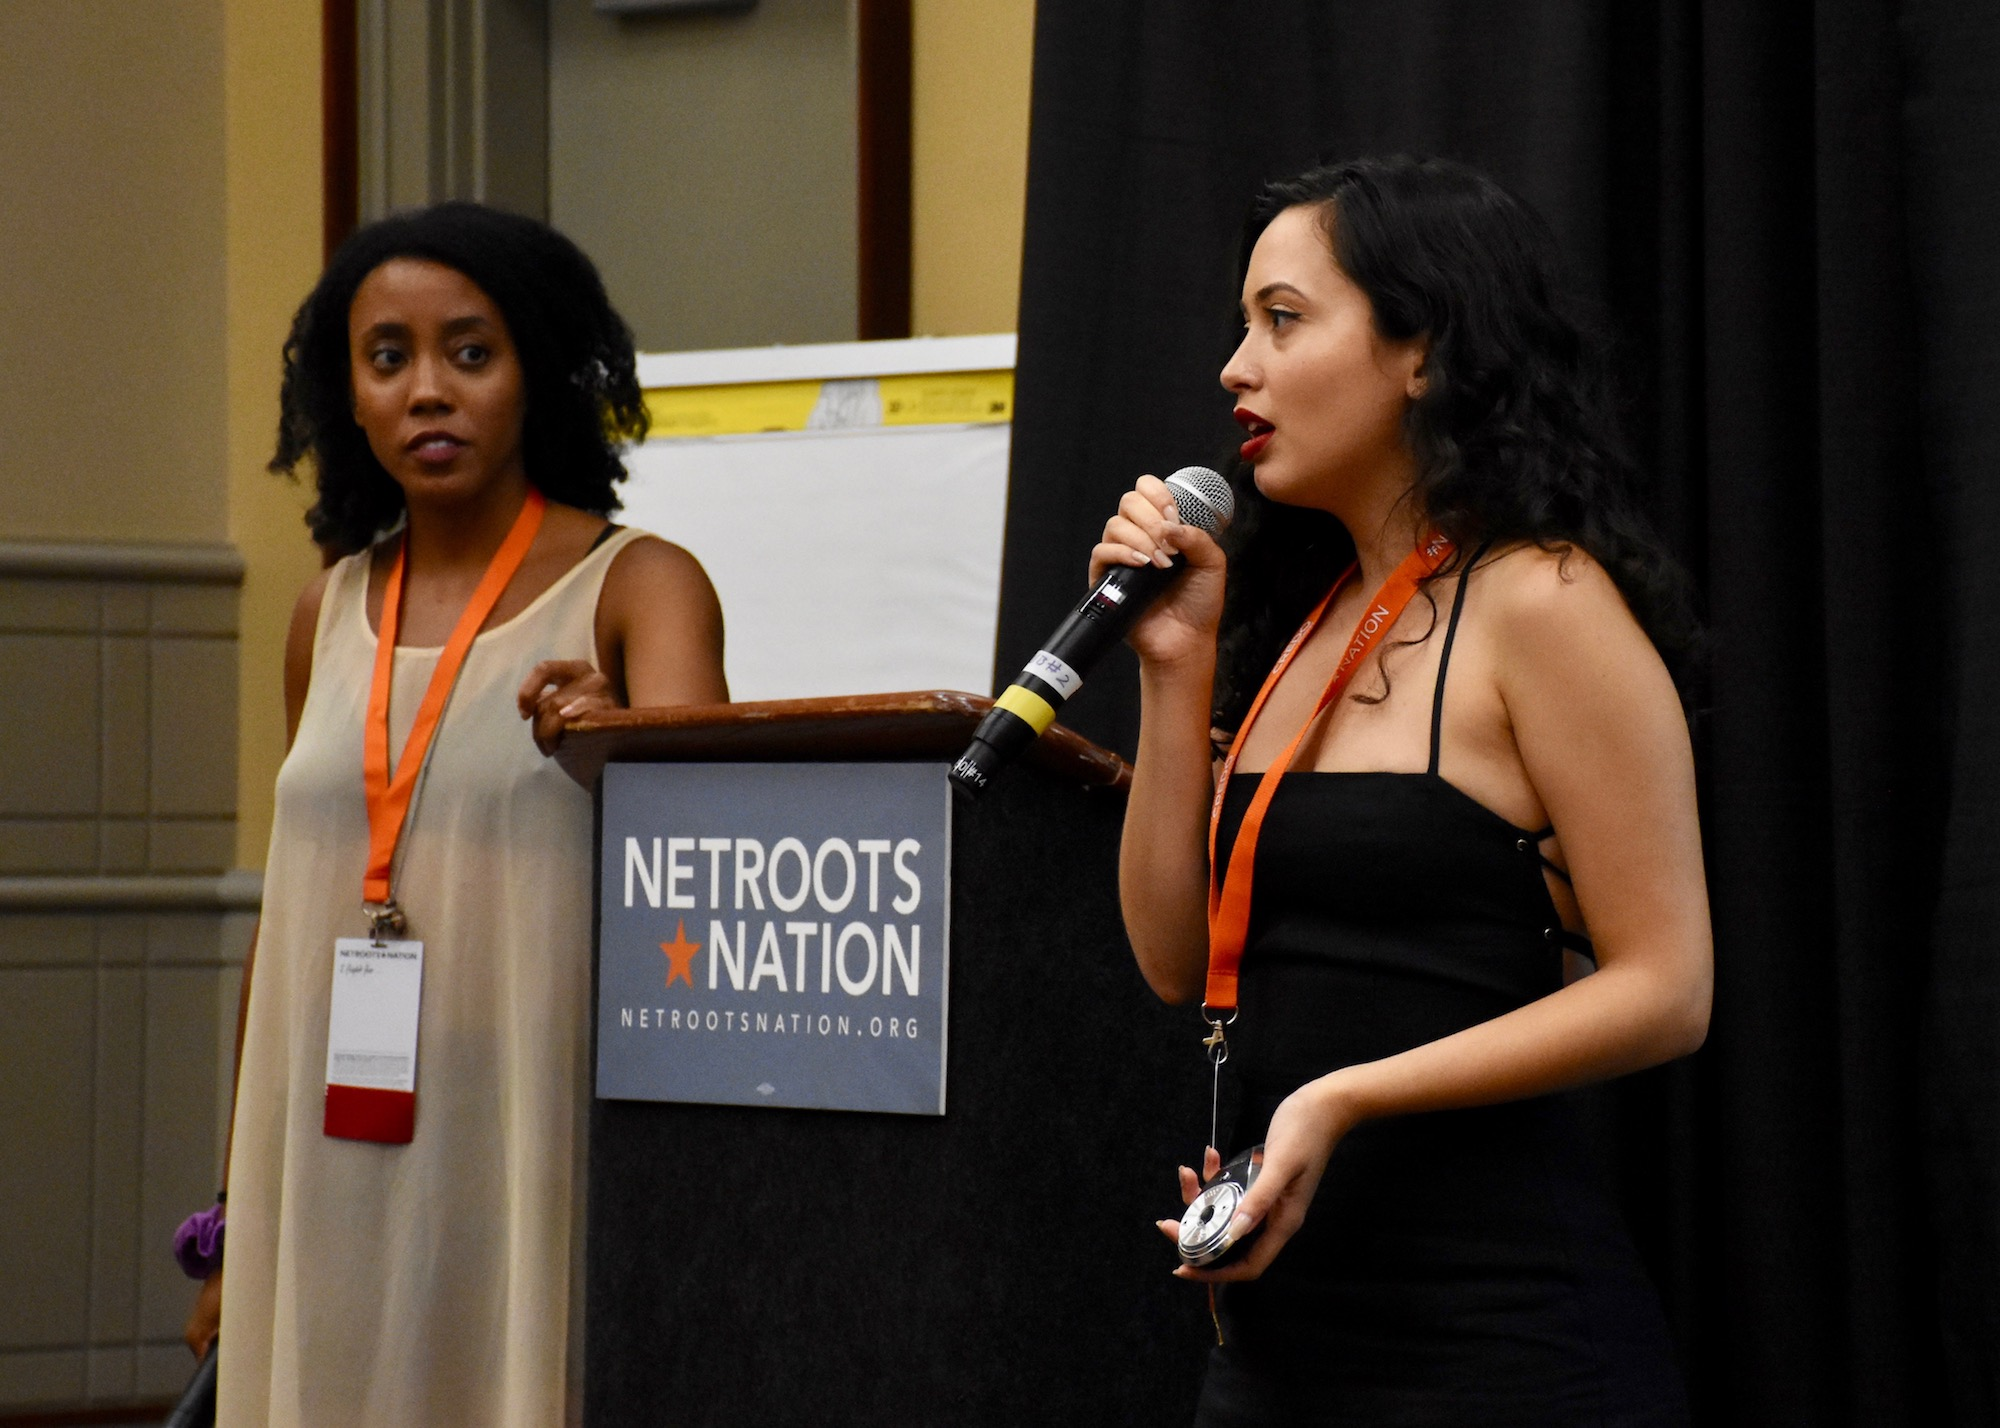 Netroots Nation Speakers